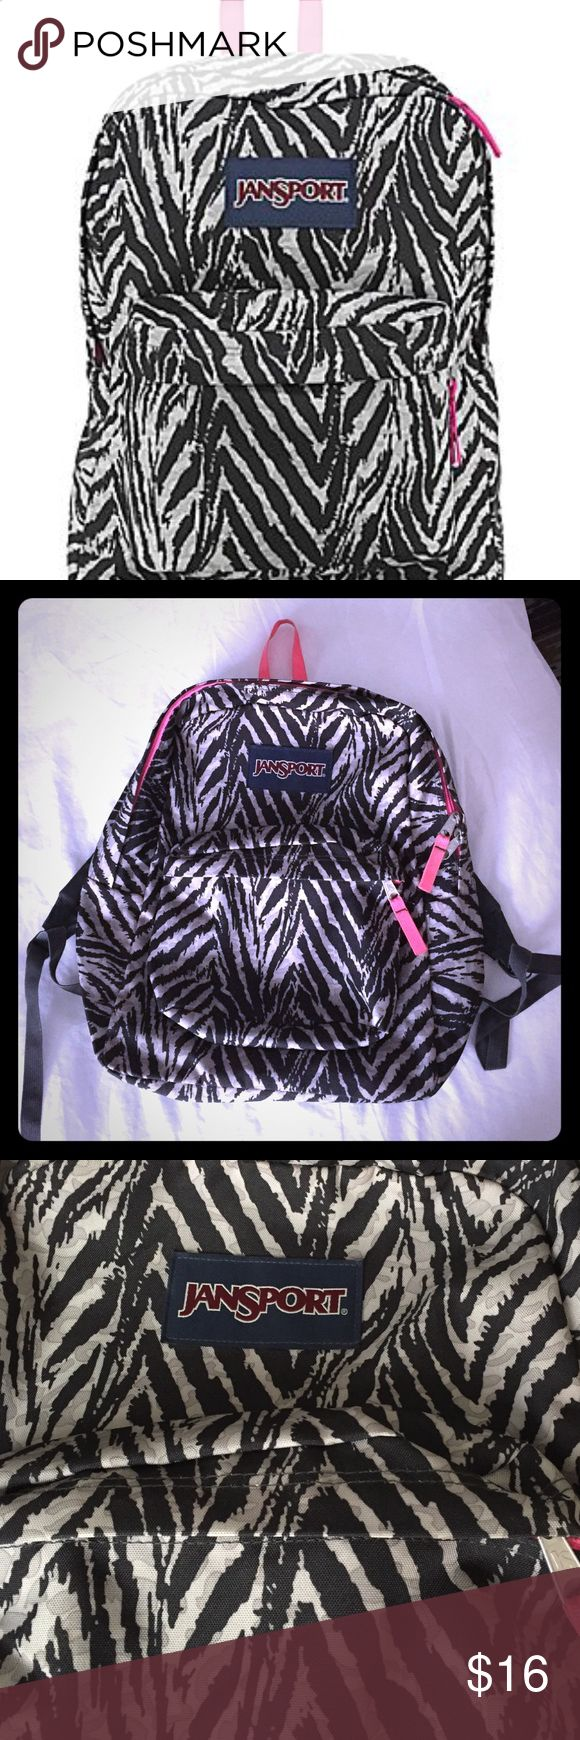 Black/Gray/Pink Jansport backpack This backpack is in EUC- pink detail with a fun animal print type pattern. Standard backpack size Jansport Bags Backpacks